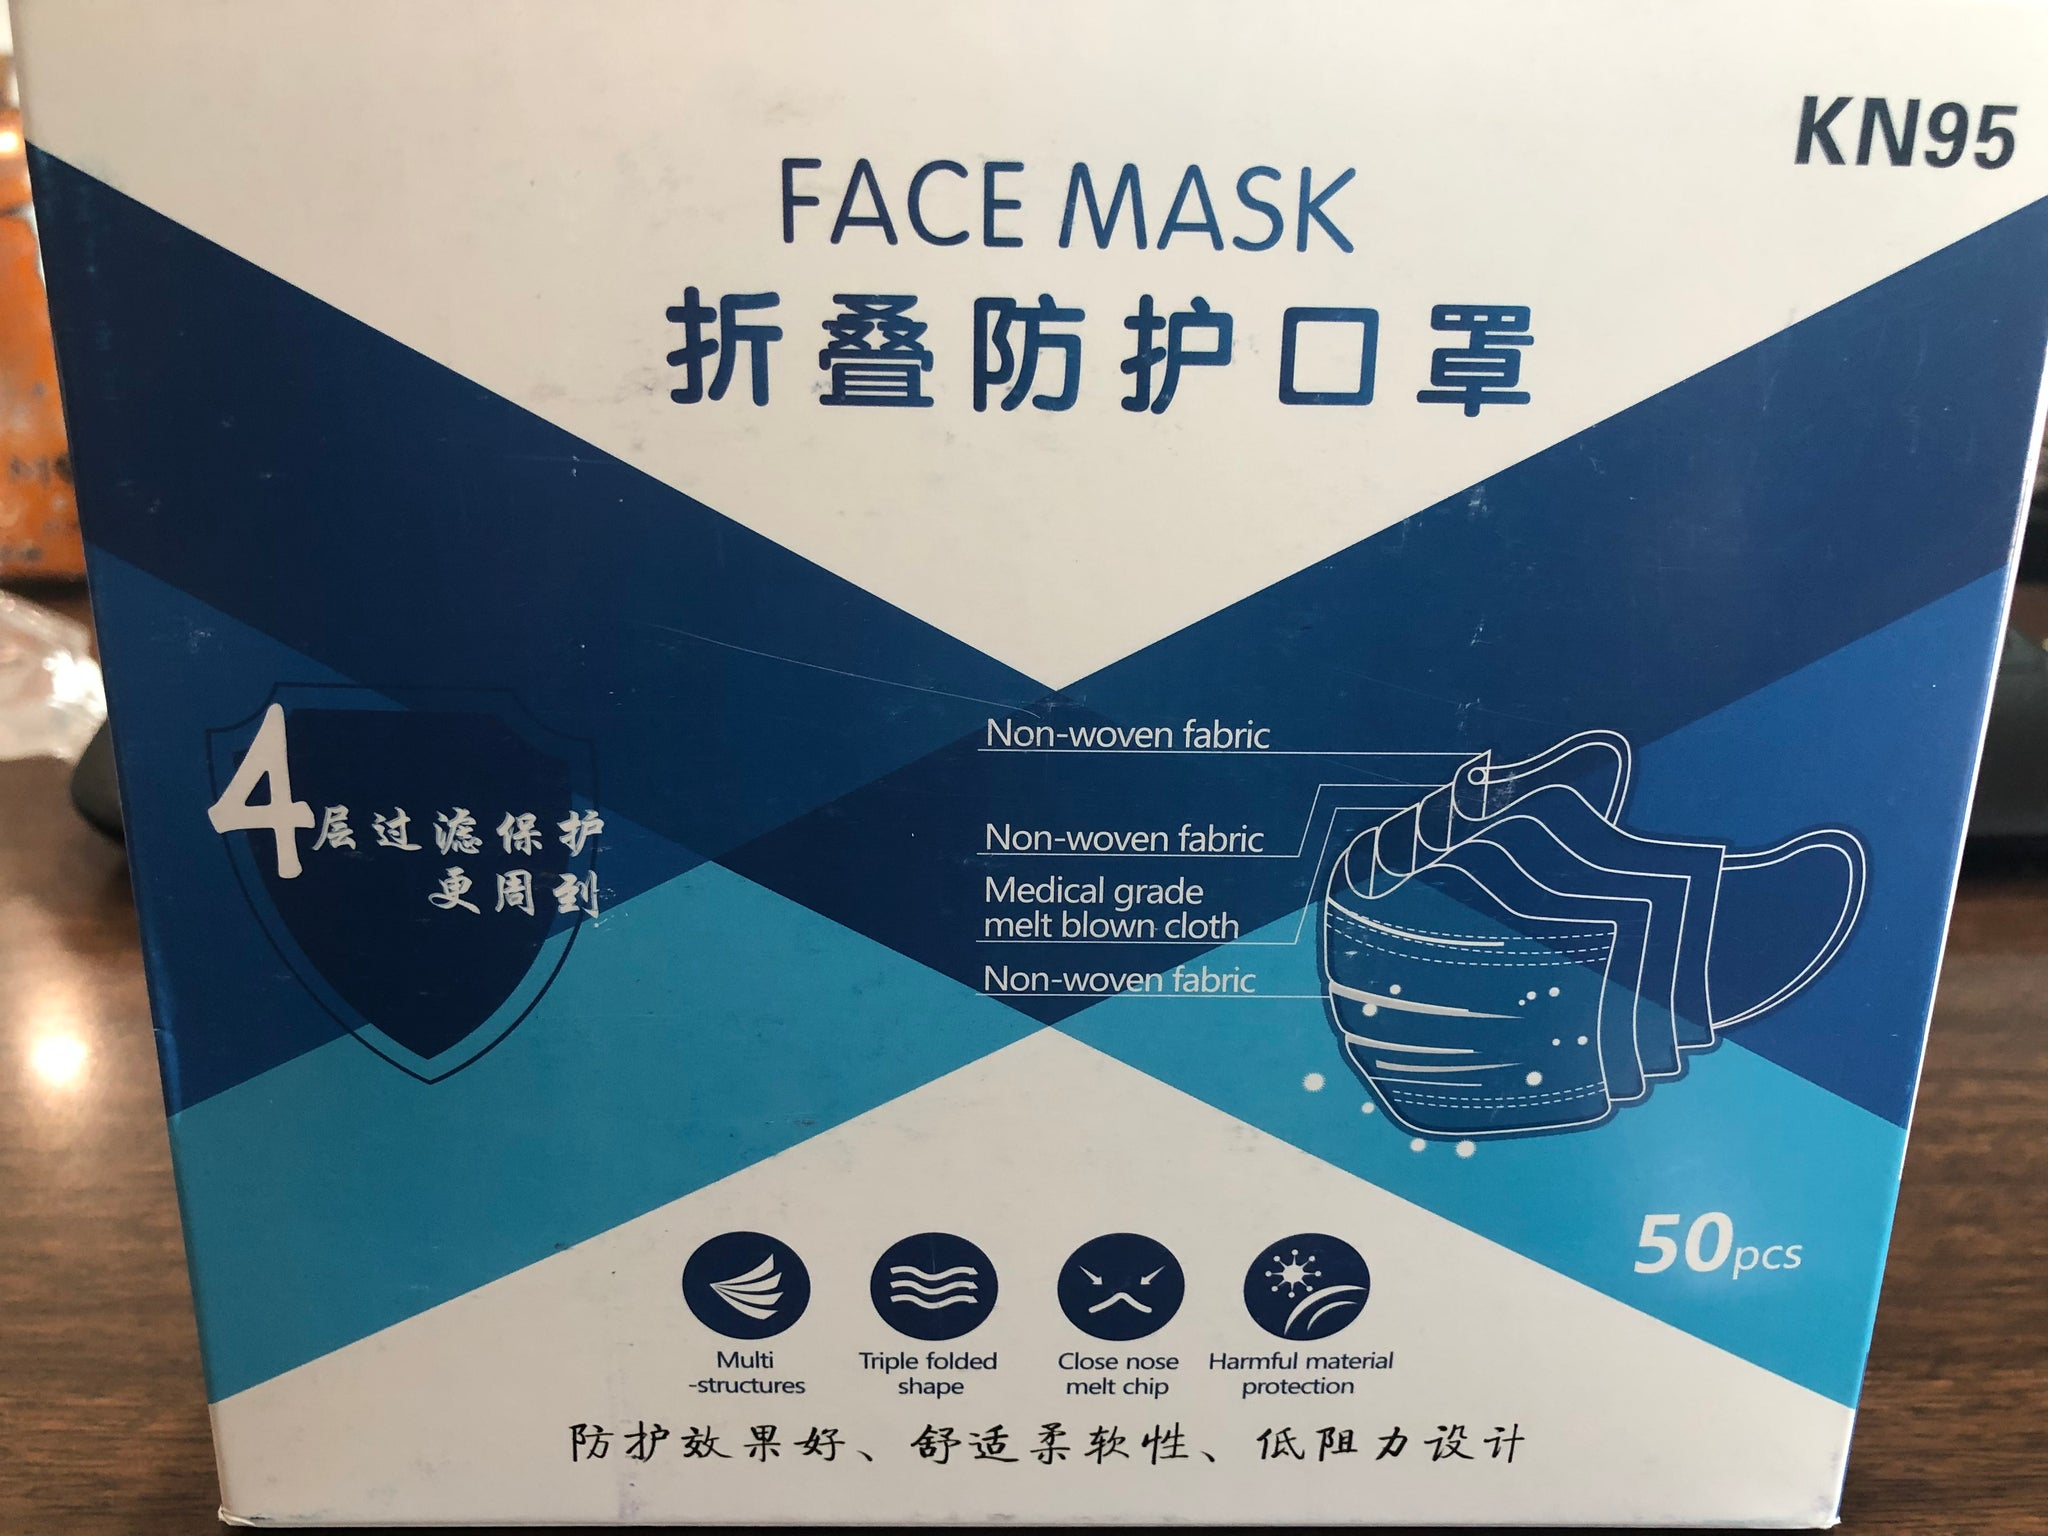 KN95 KN-95 FFP2 FDA AND CE CERTIFIED 4-LAYER FACEMASK PACK OF 50